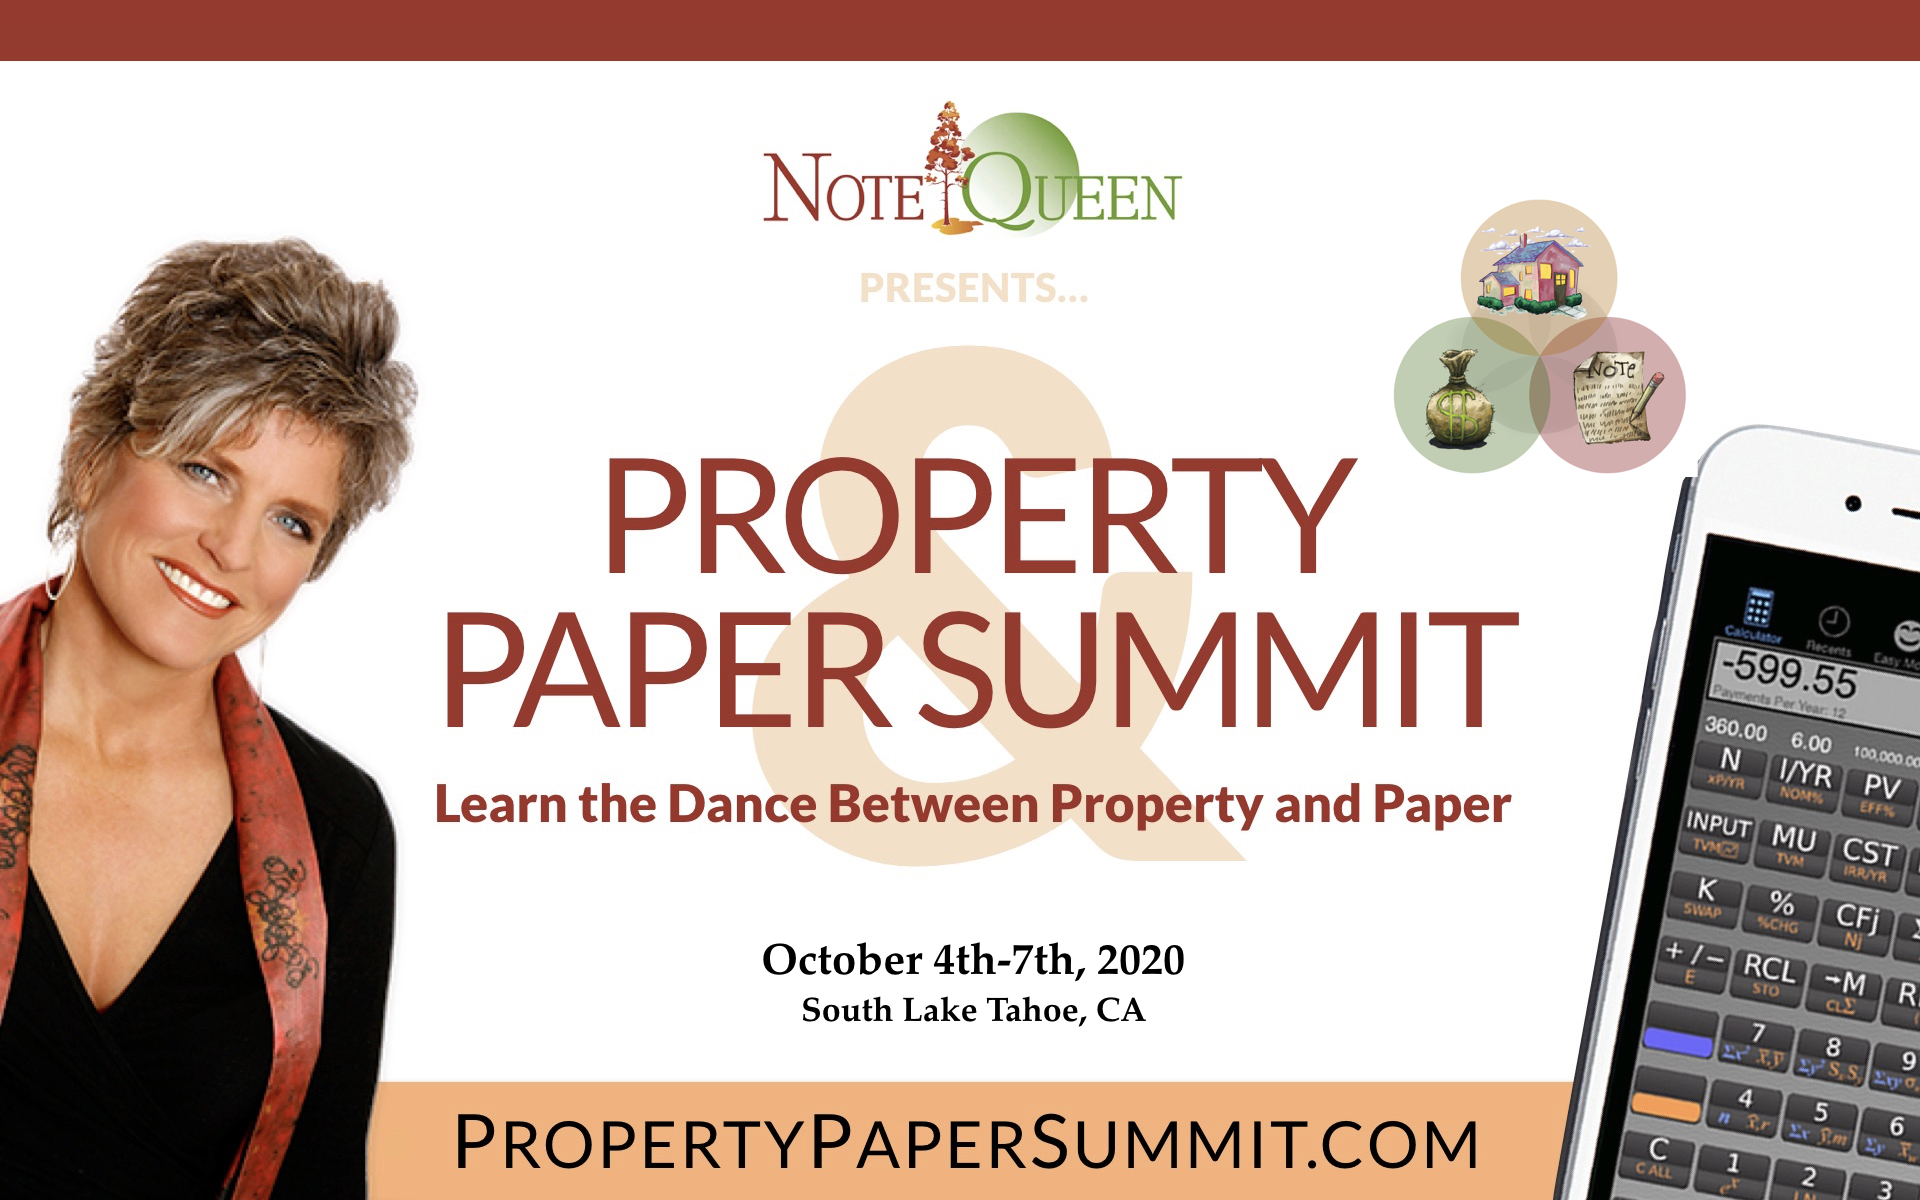 Note Queen Property Paper Summit 2020